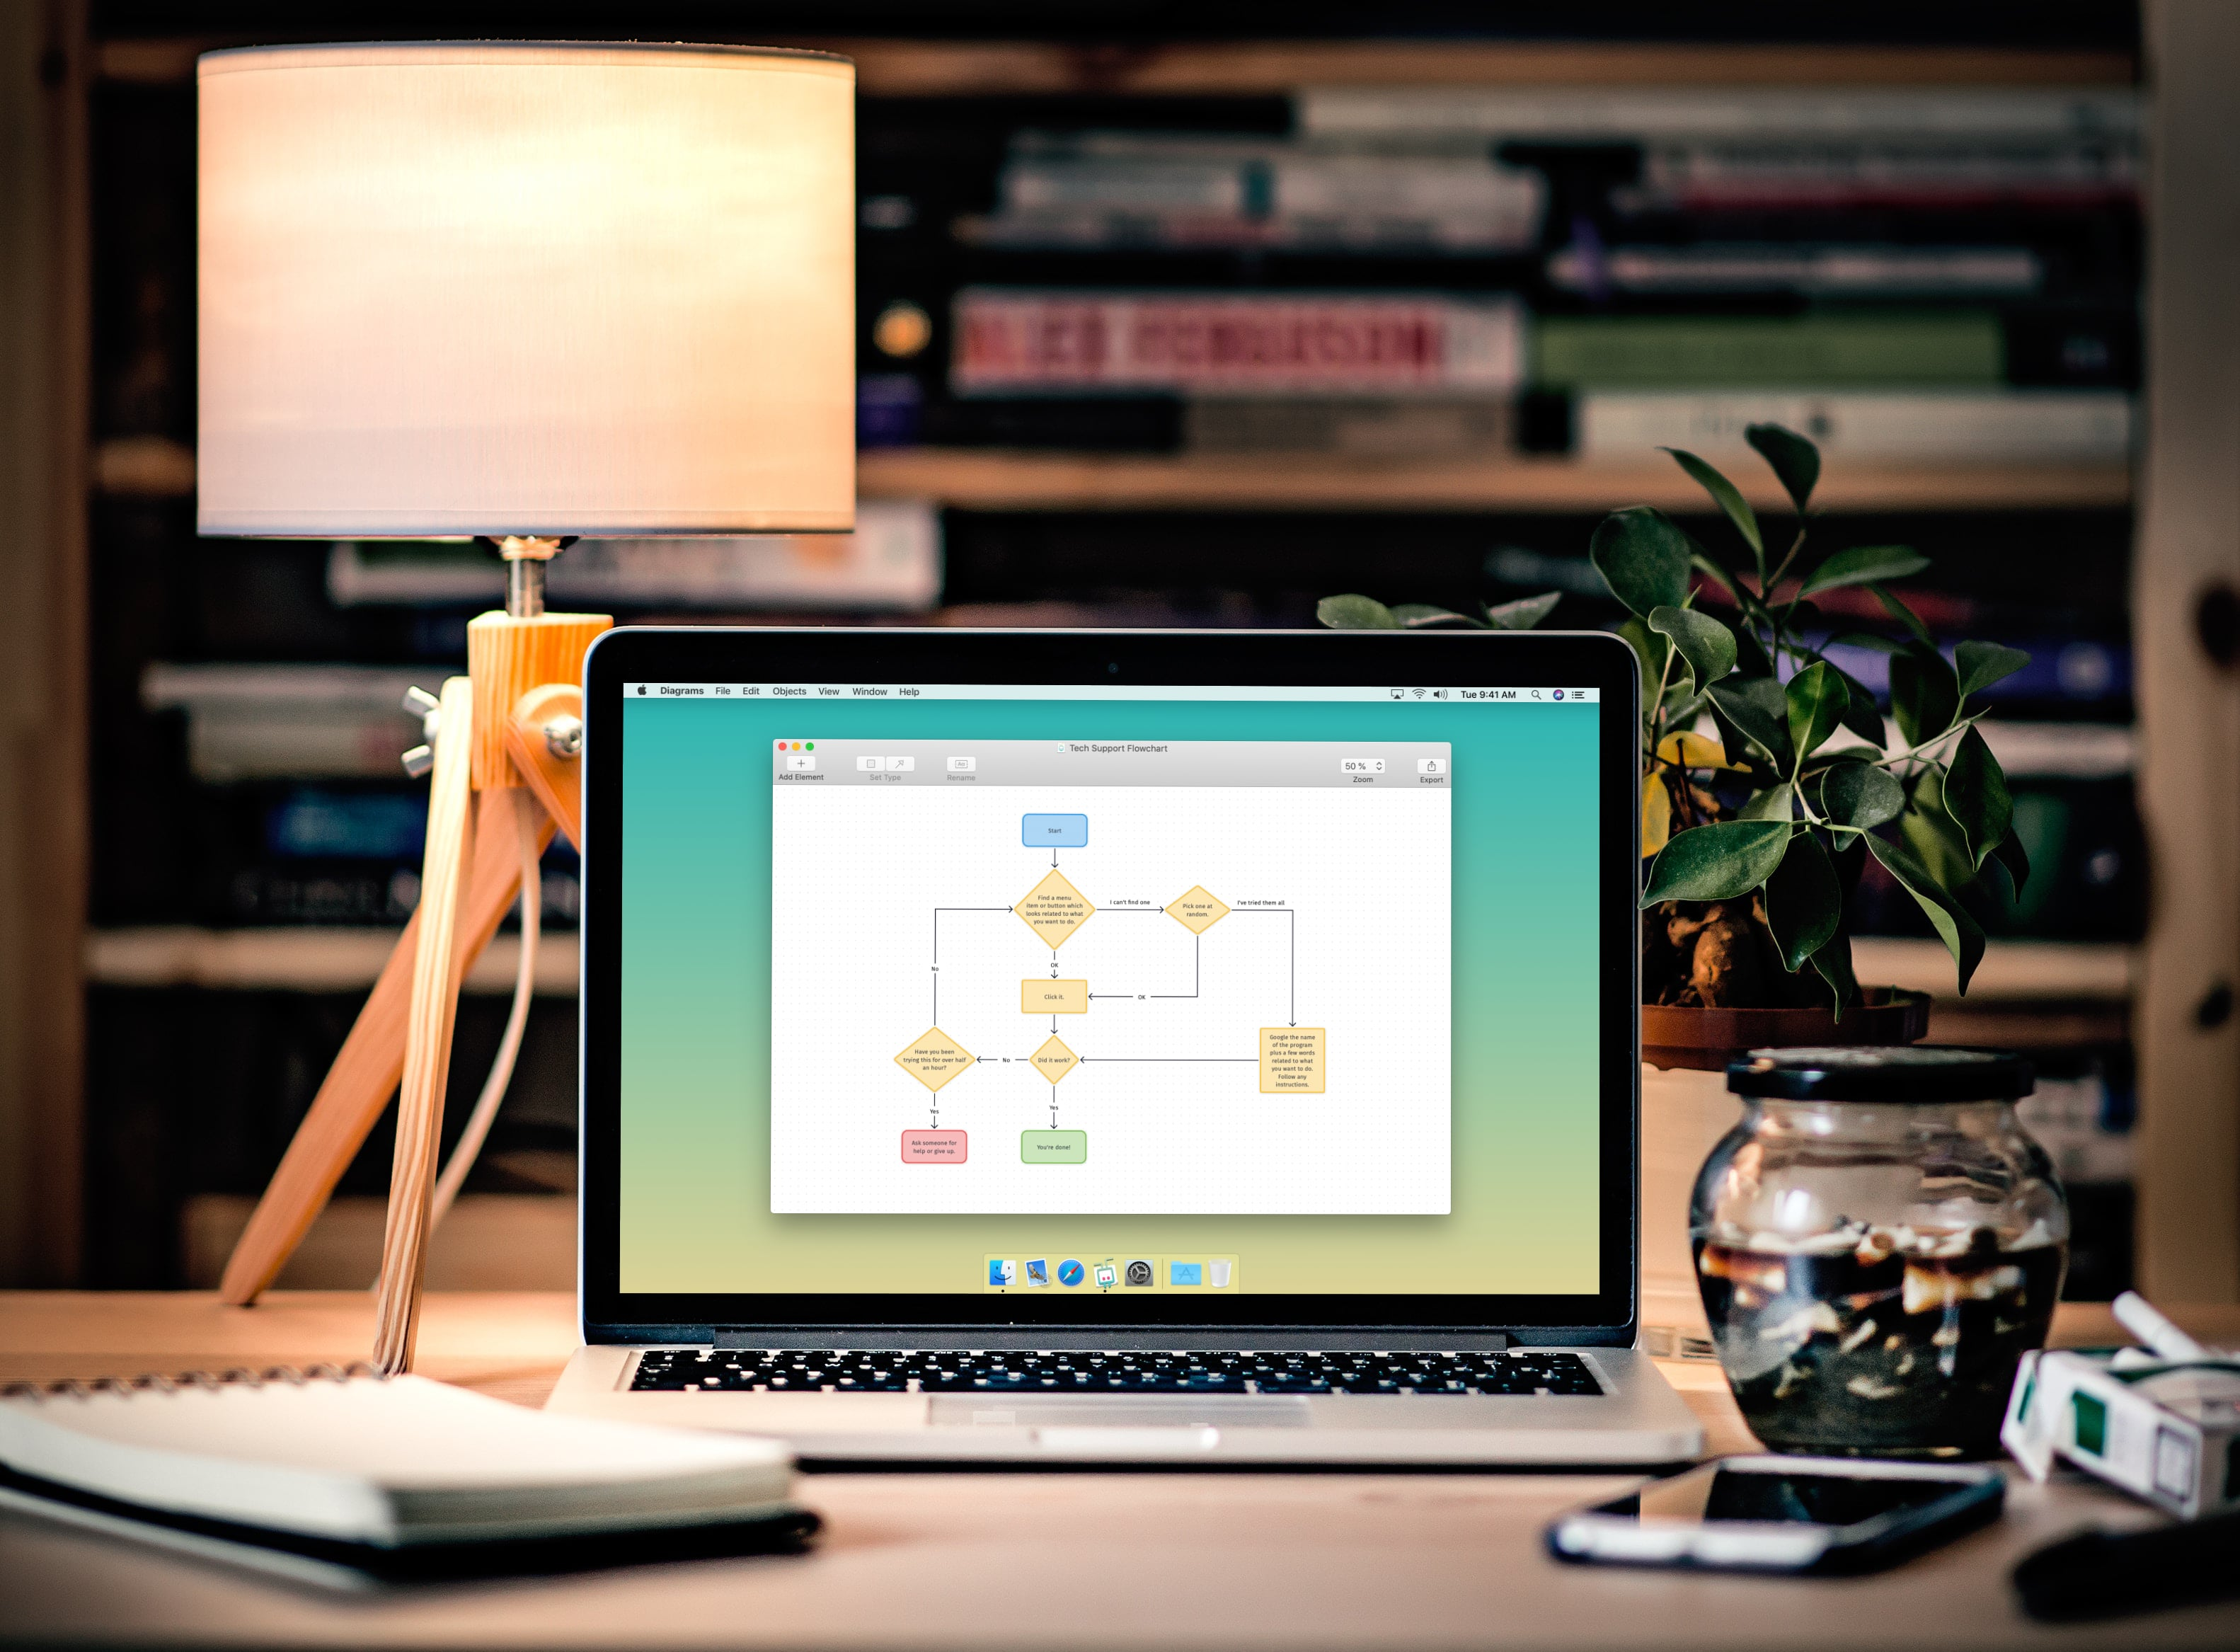 Diagrams for Mac: A Promising Beginning